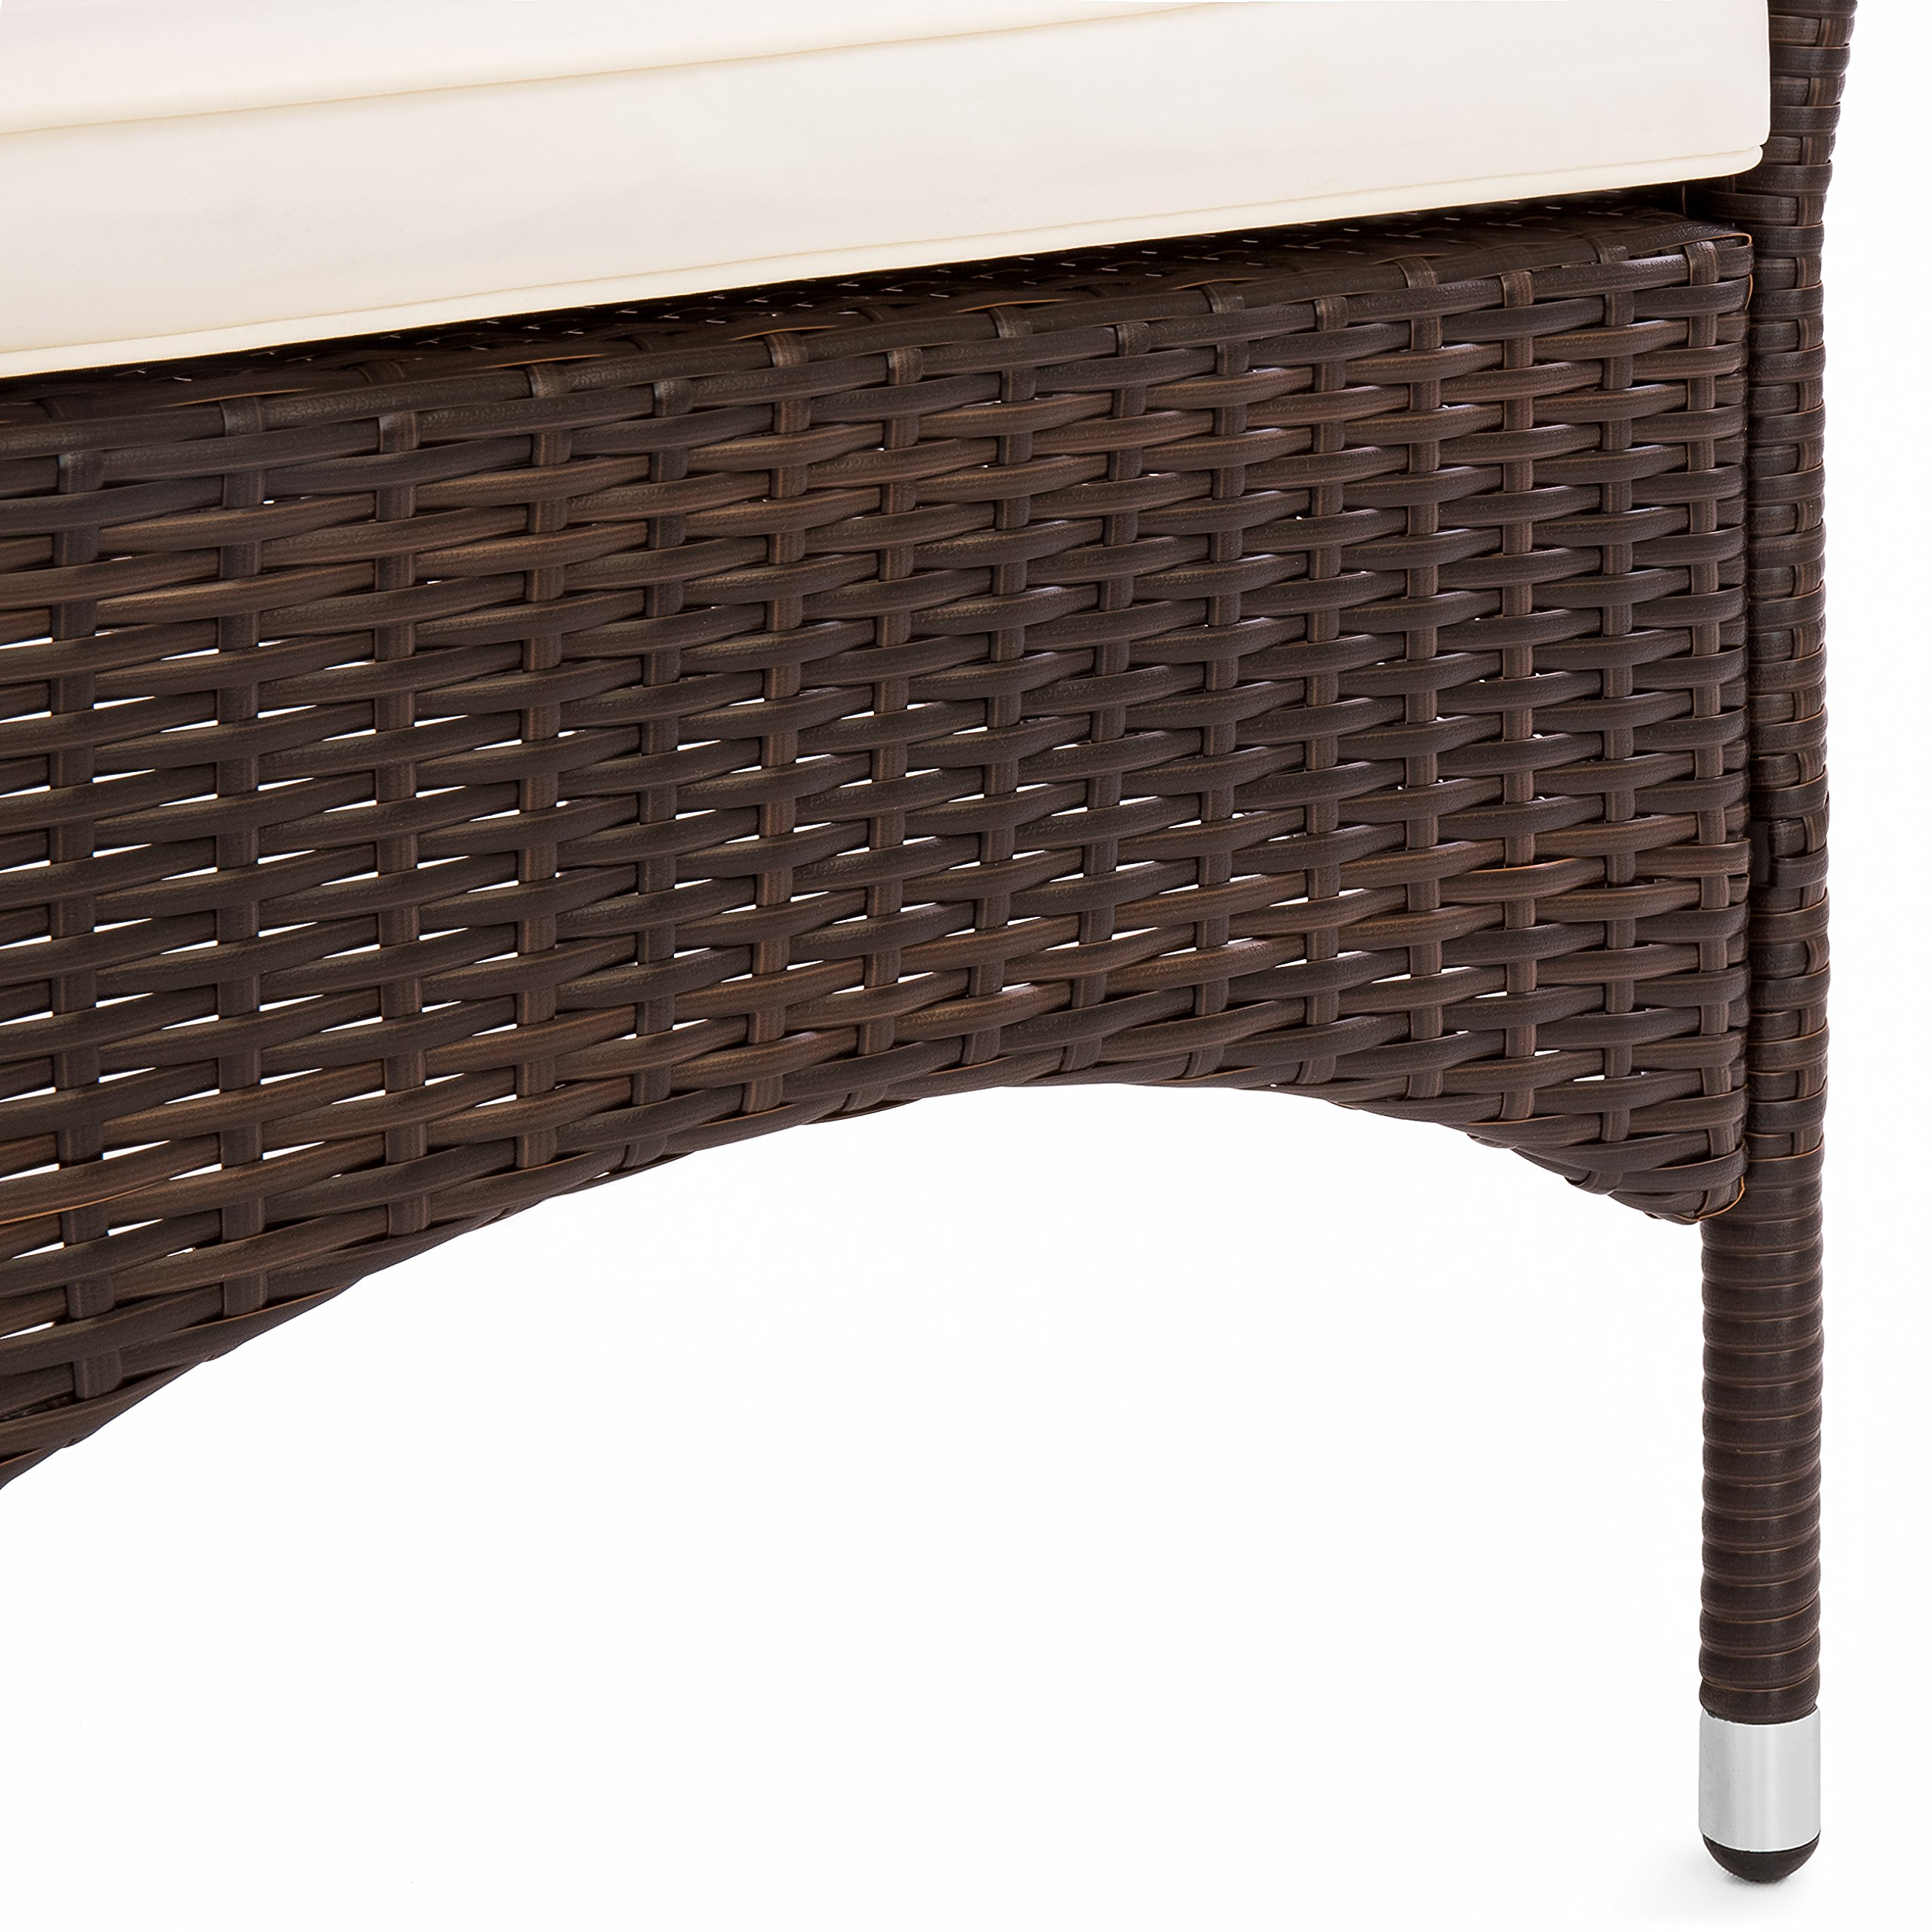 Best Choice Products Set of 2 Modern Contemporary Wicker Patio Dining Chairs w/Water Resistant Cushion - Brown by Best Choice Products (Image #4)